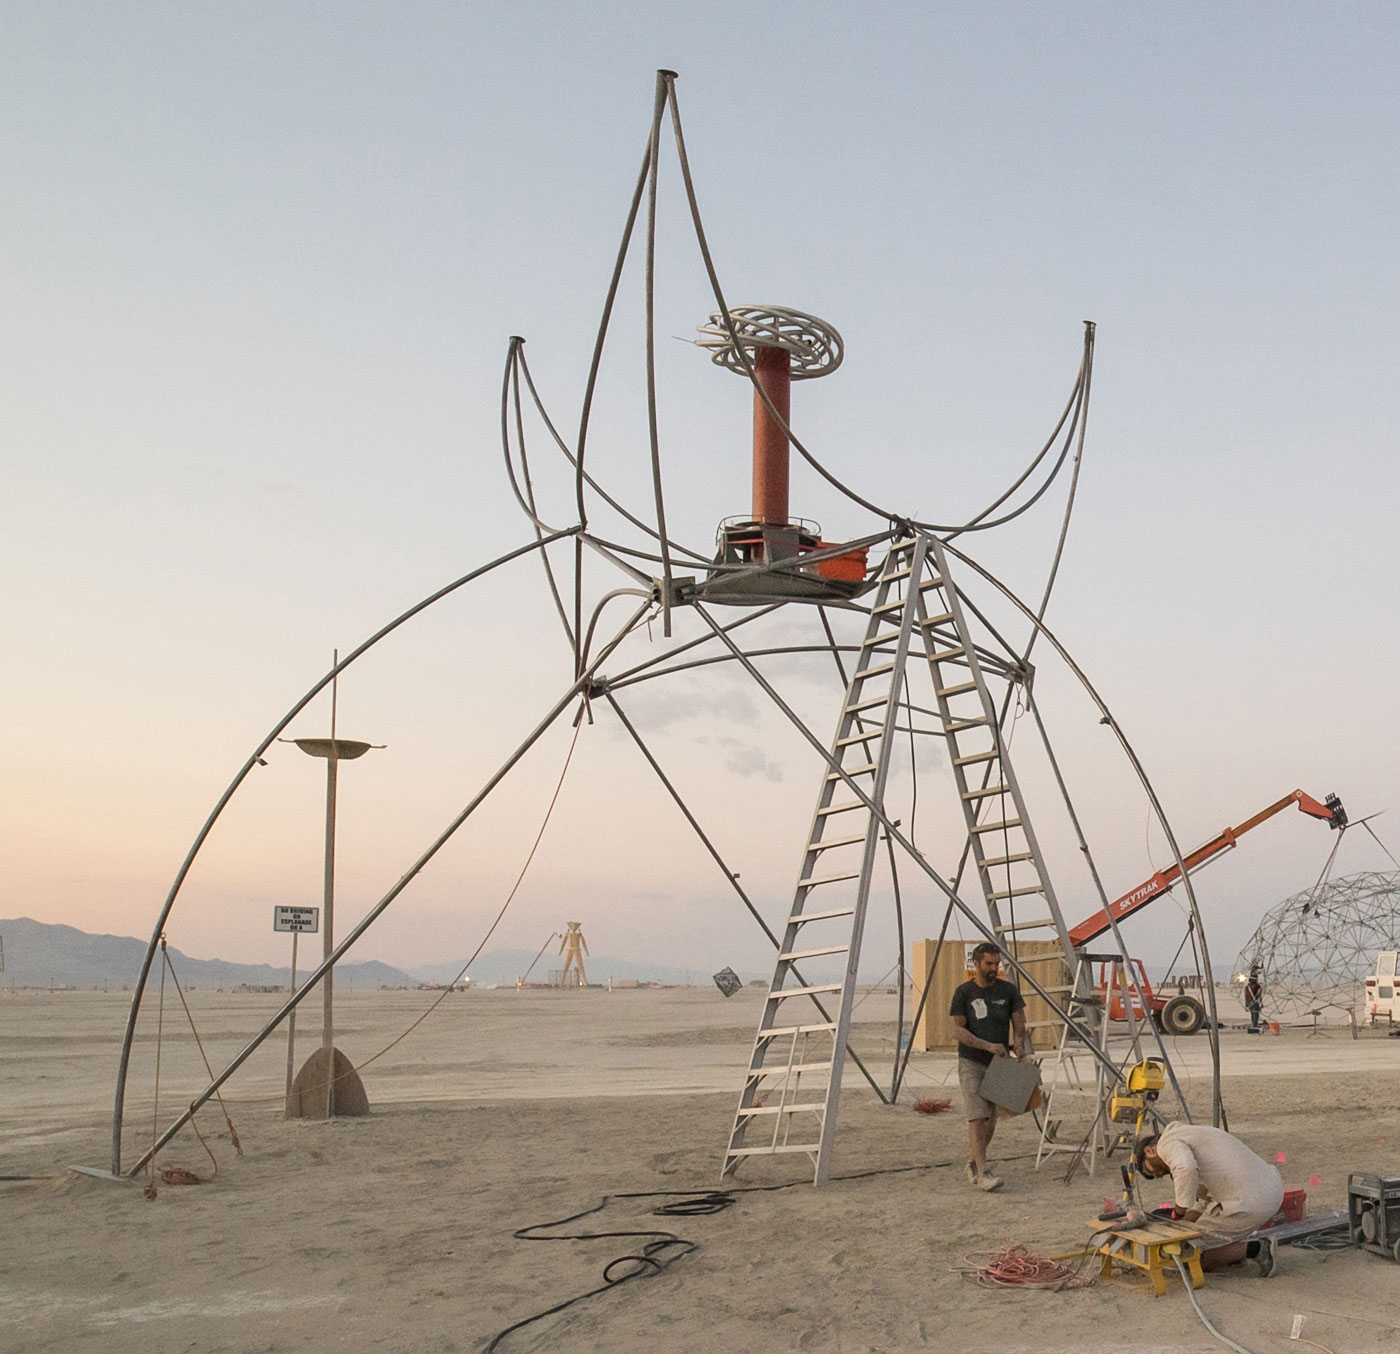 Matt and David working on Coup de Foudre at Burning Man